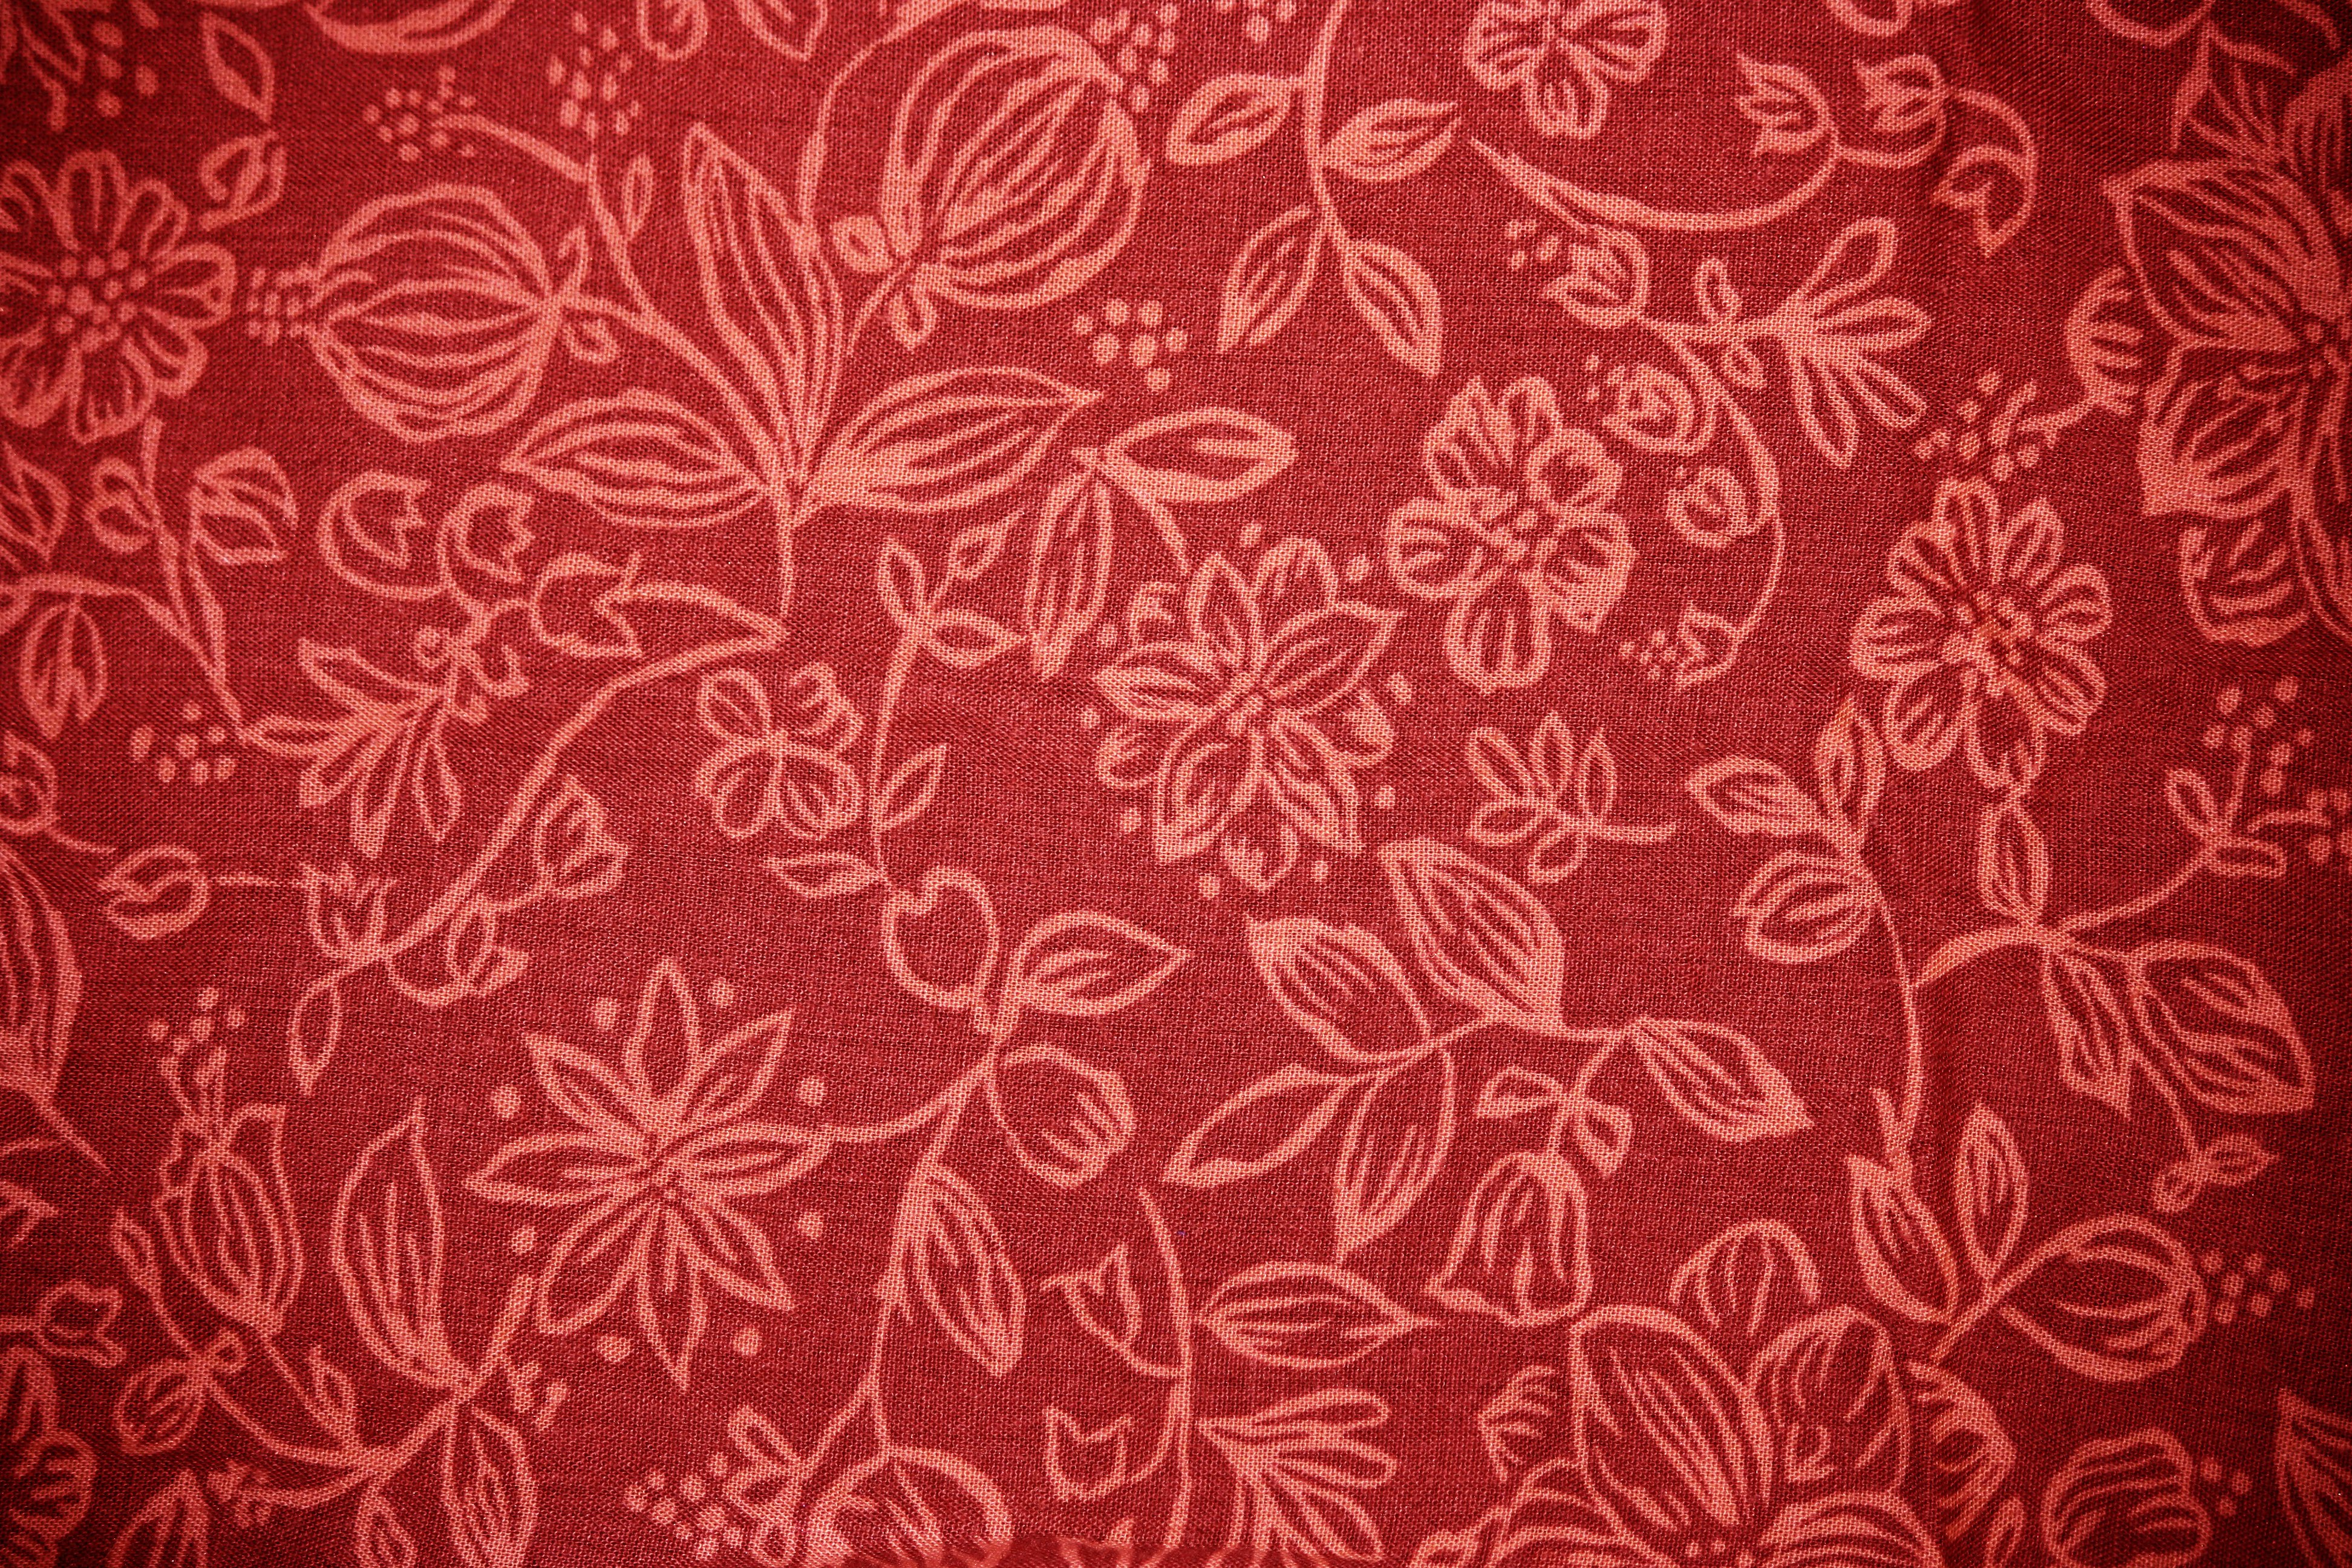 Red Fabric With Floral Pattern Texture Picture Free Photograph